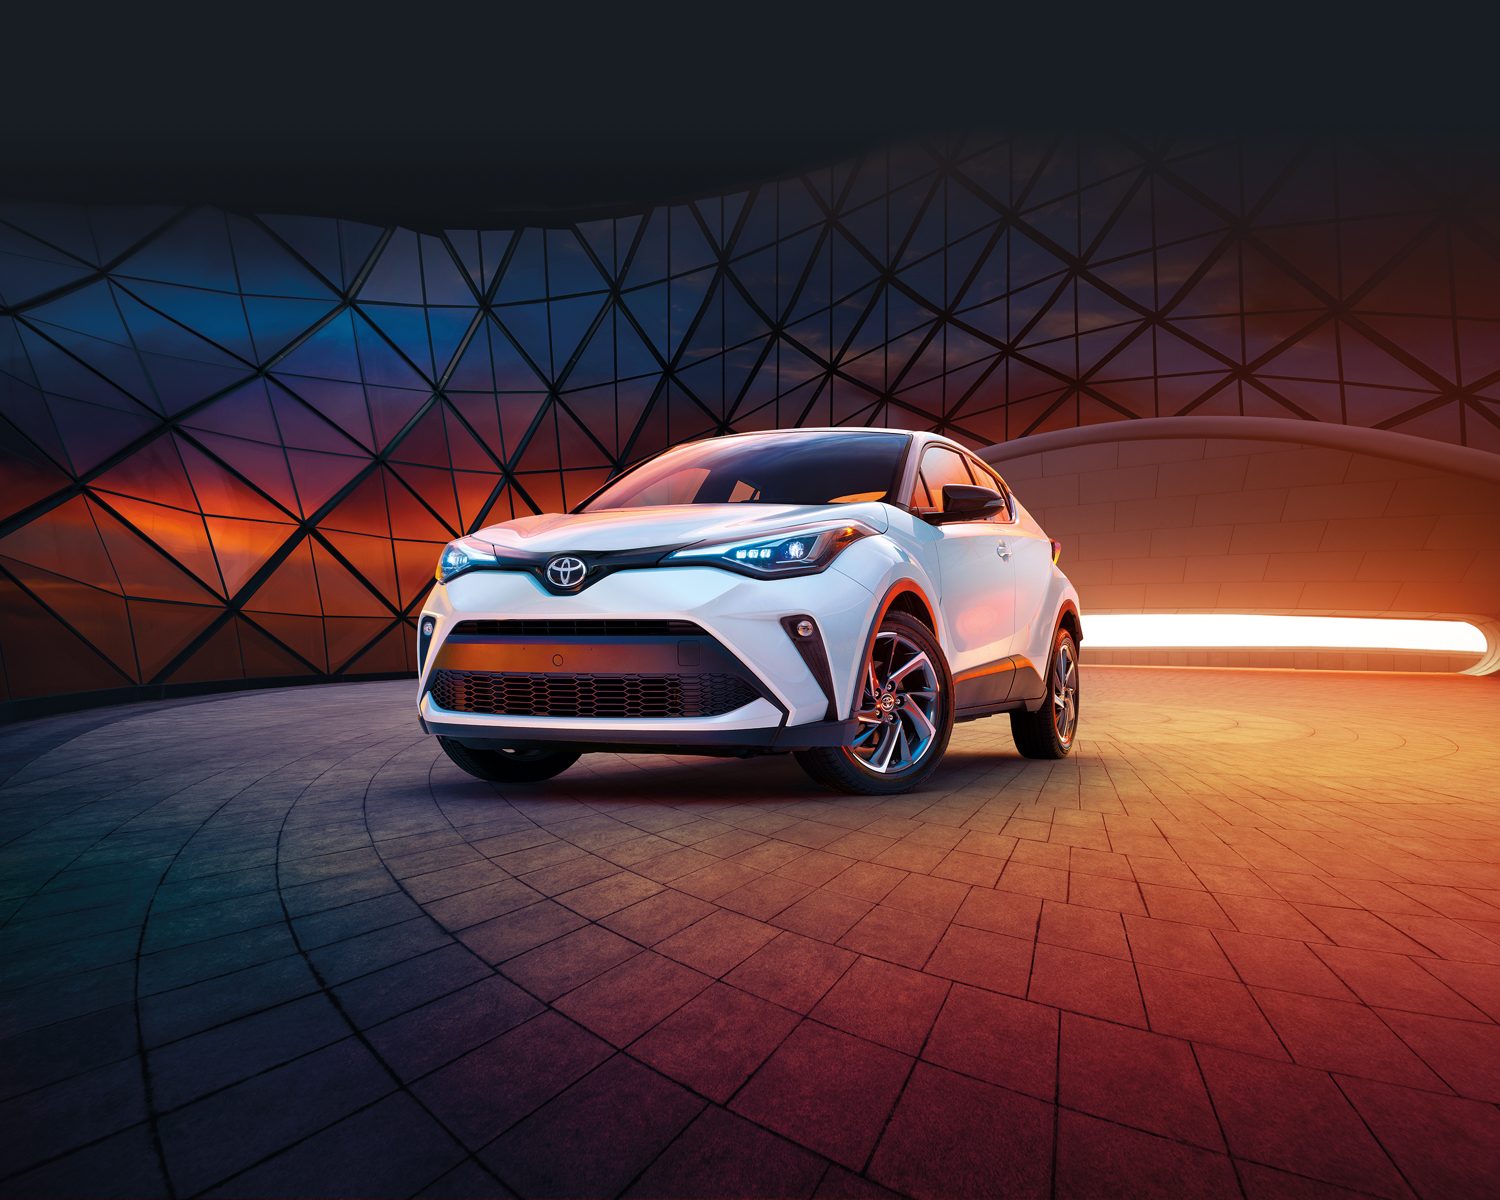 C-HR shown in Blizard Pearl with Black Roof